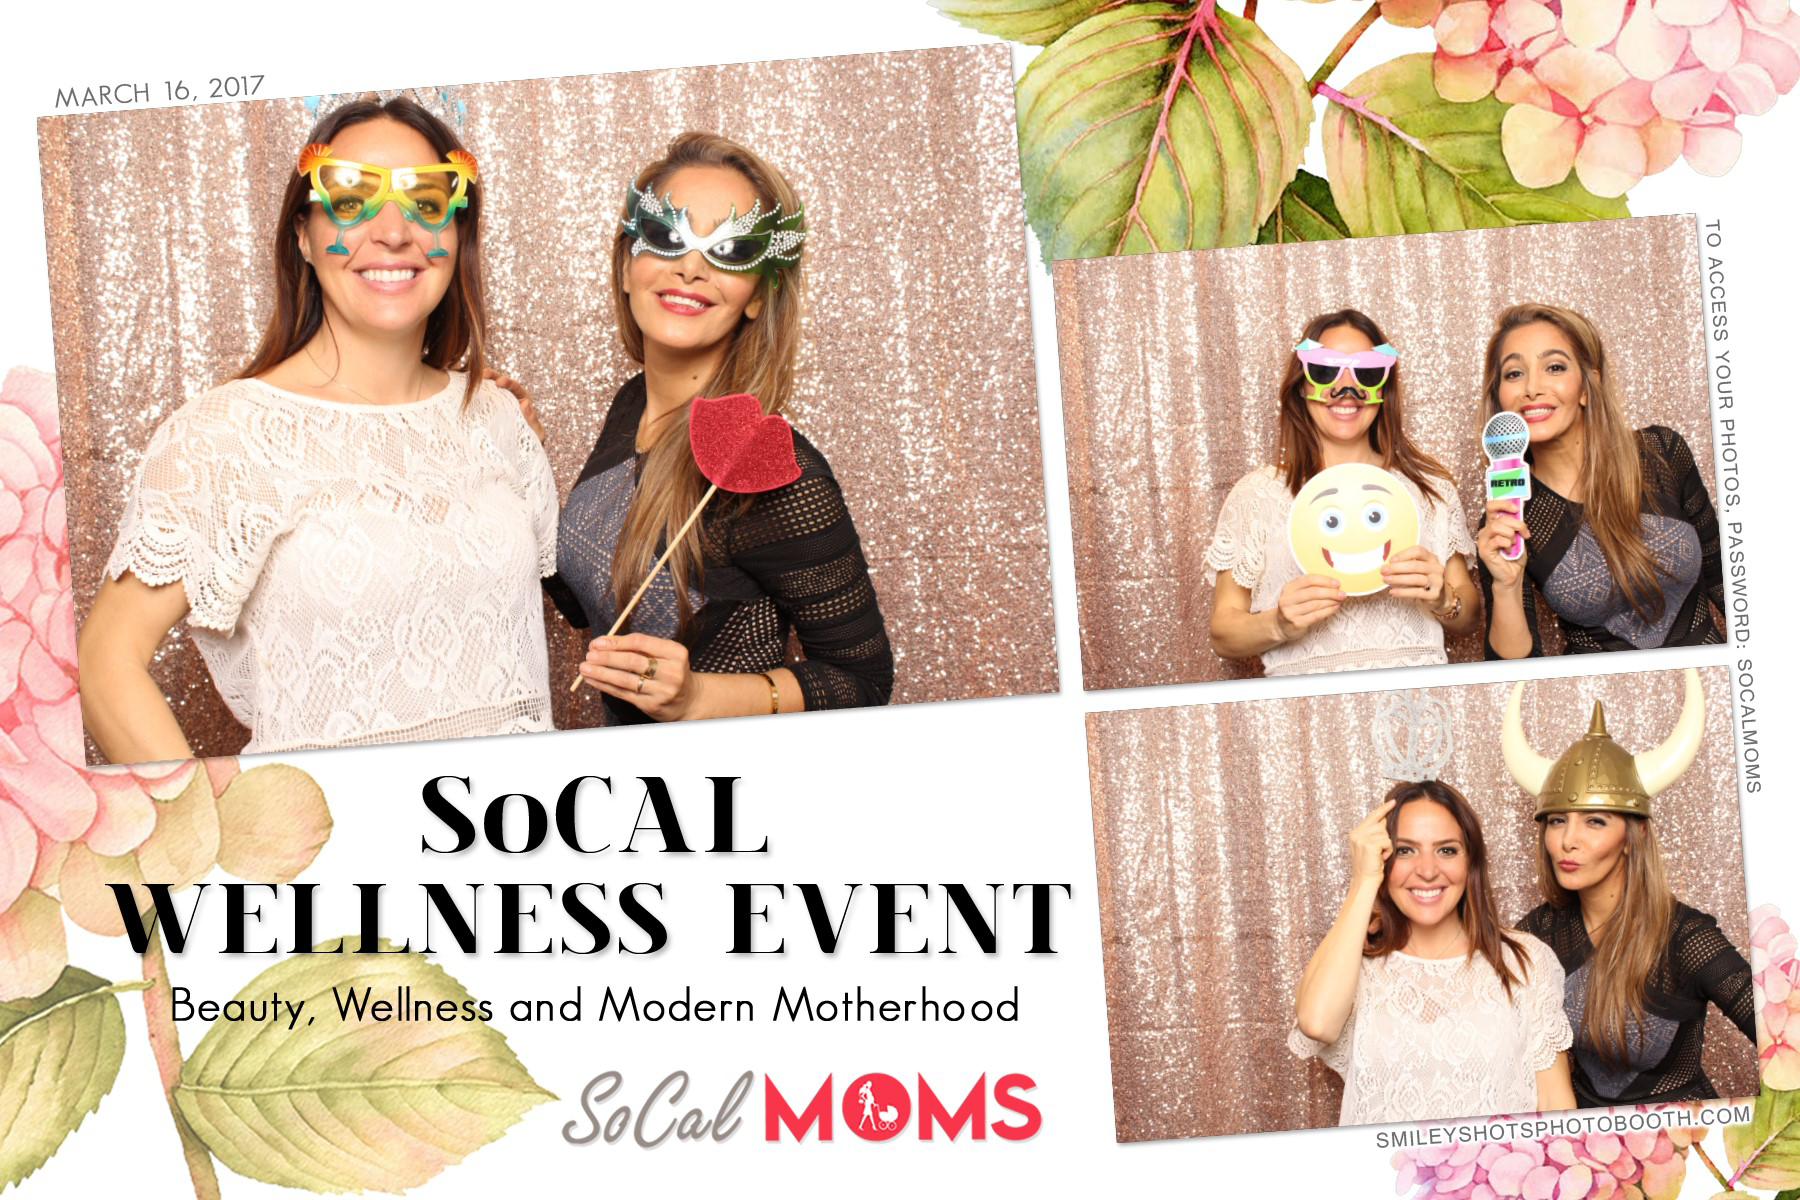 Socal Wellness Event Socal Moms Smiley Shots Photo Booth Photobooth (25).png